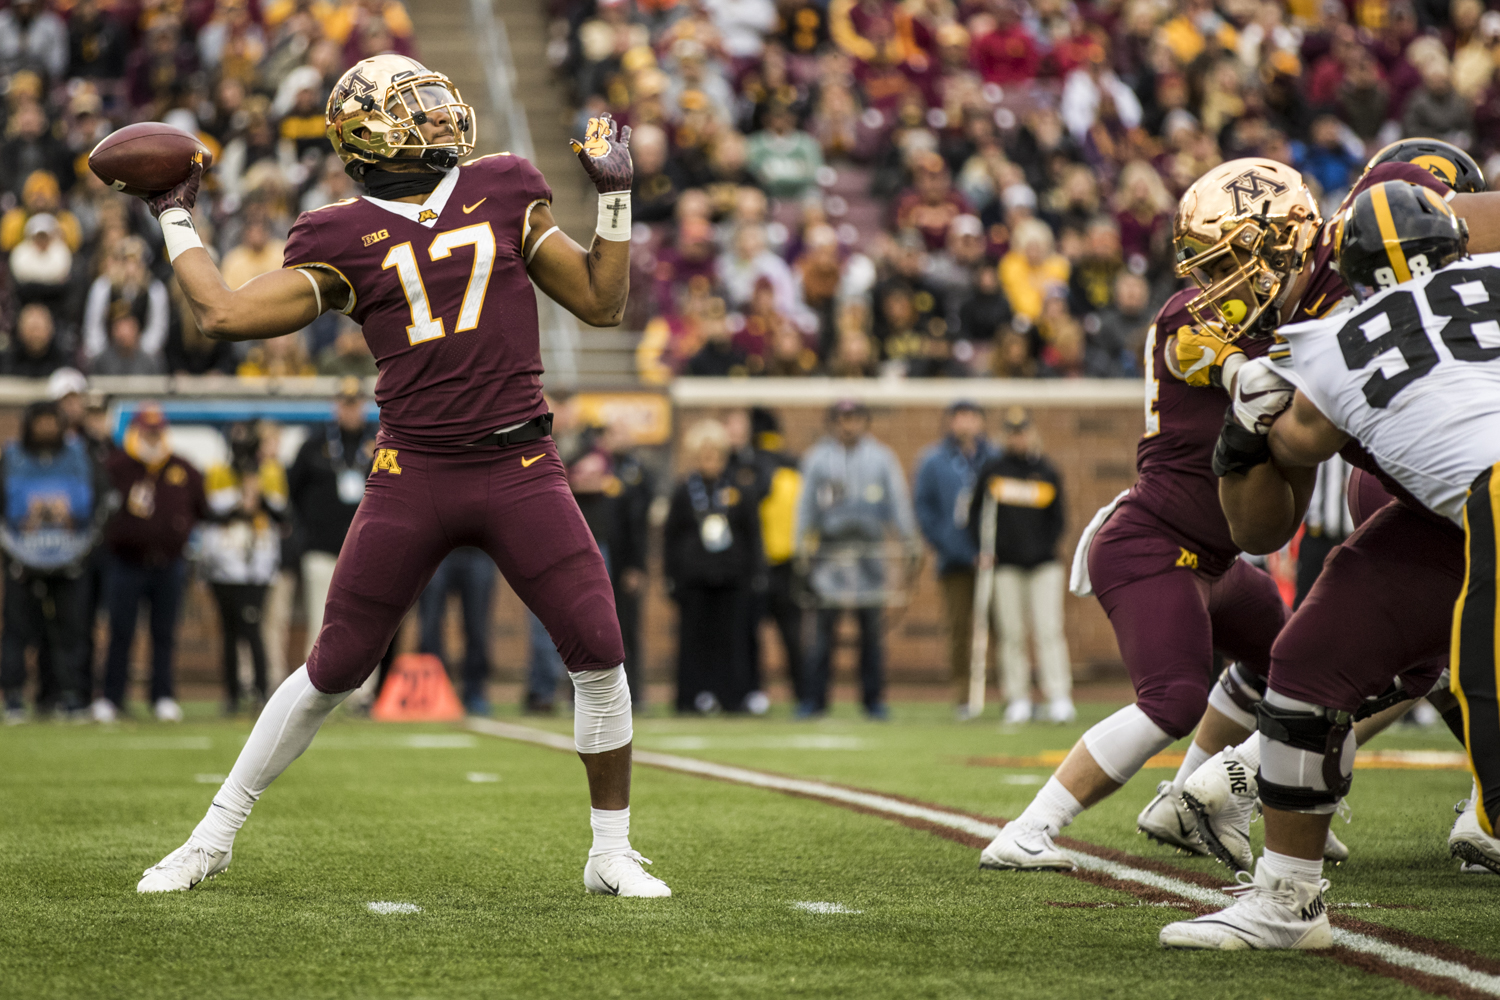 Minnesota+wide+receiver+Seth+Green+throws+a+pass+from+a+wildcat+formation+during+Iowa%27s+game+against+Minnesota+at+TCF+Bank+Stadium+on+Saturday%2C+October+6%2C+2018.+The+Hawkeyes+defeated+the+Golden+Gophers+48-31.